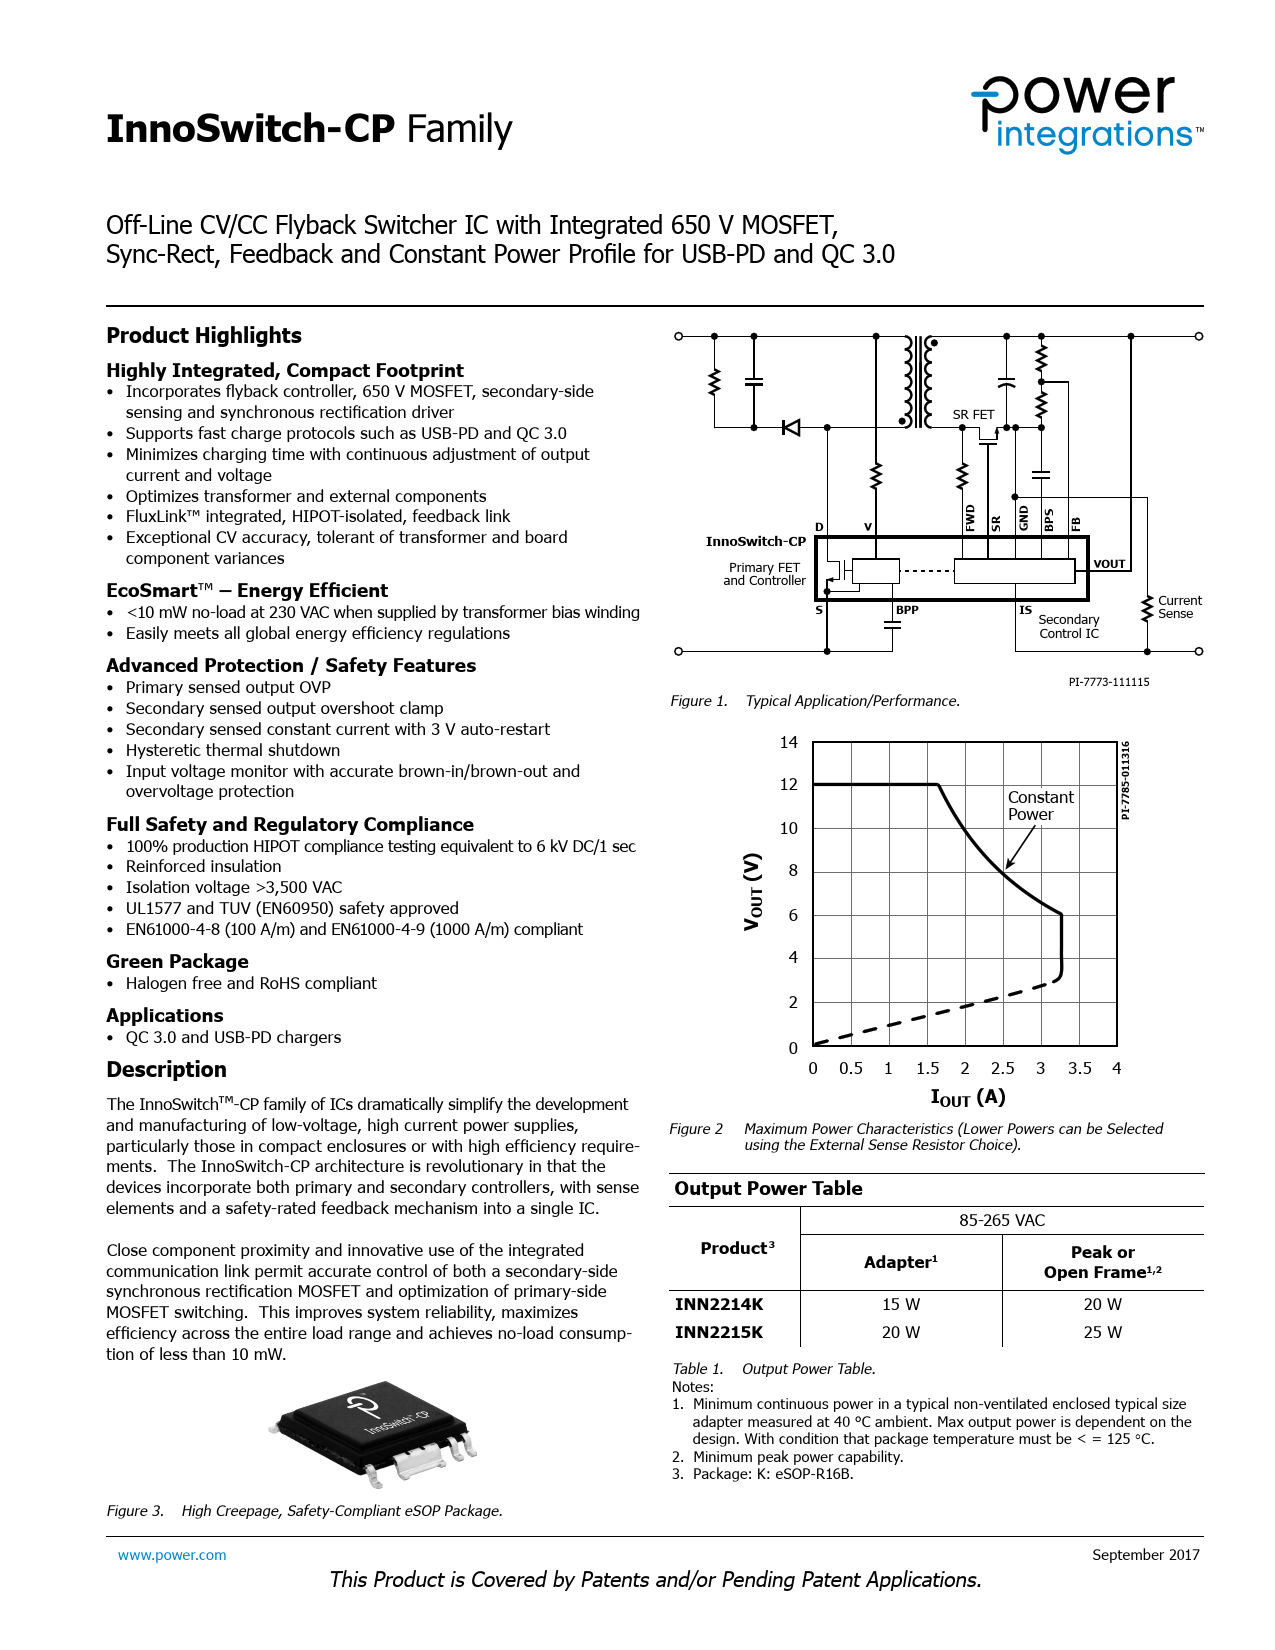 Datasheet InnoSwitch-CP Power Integrations